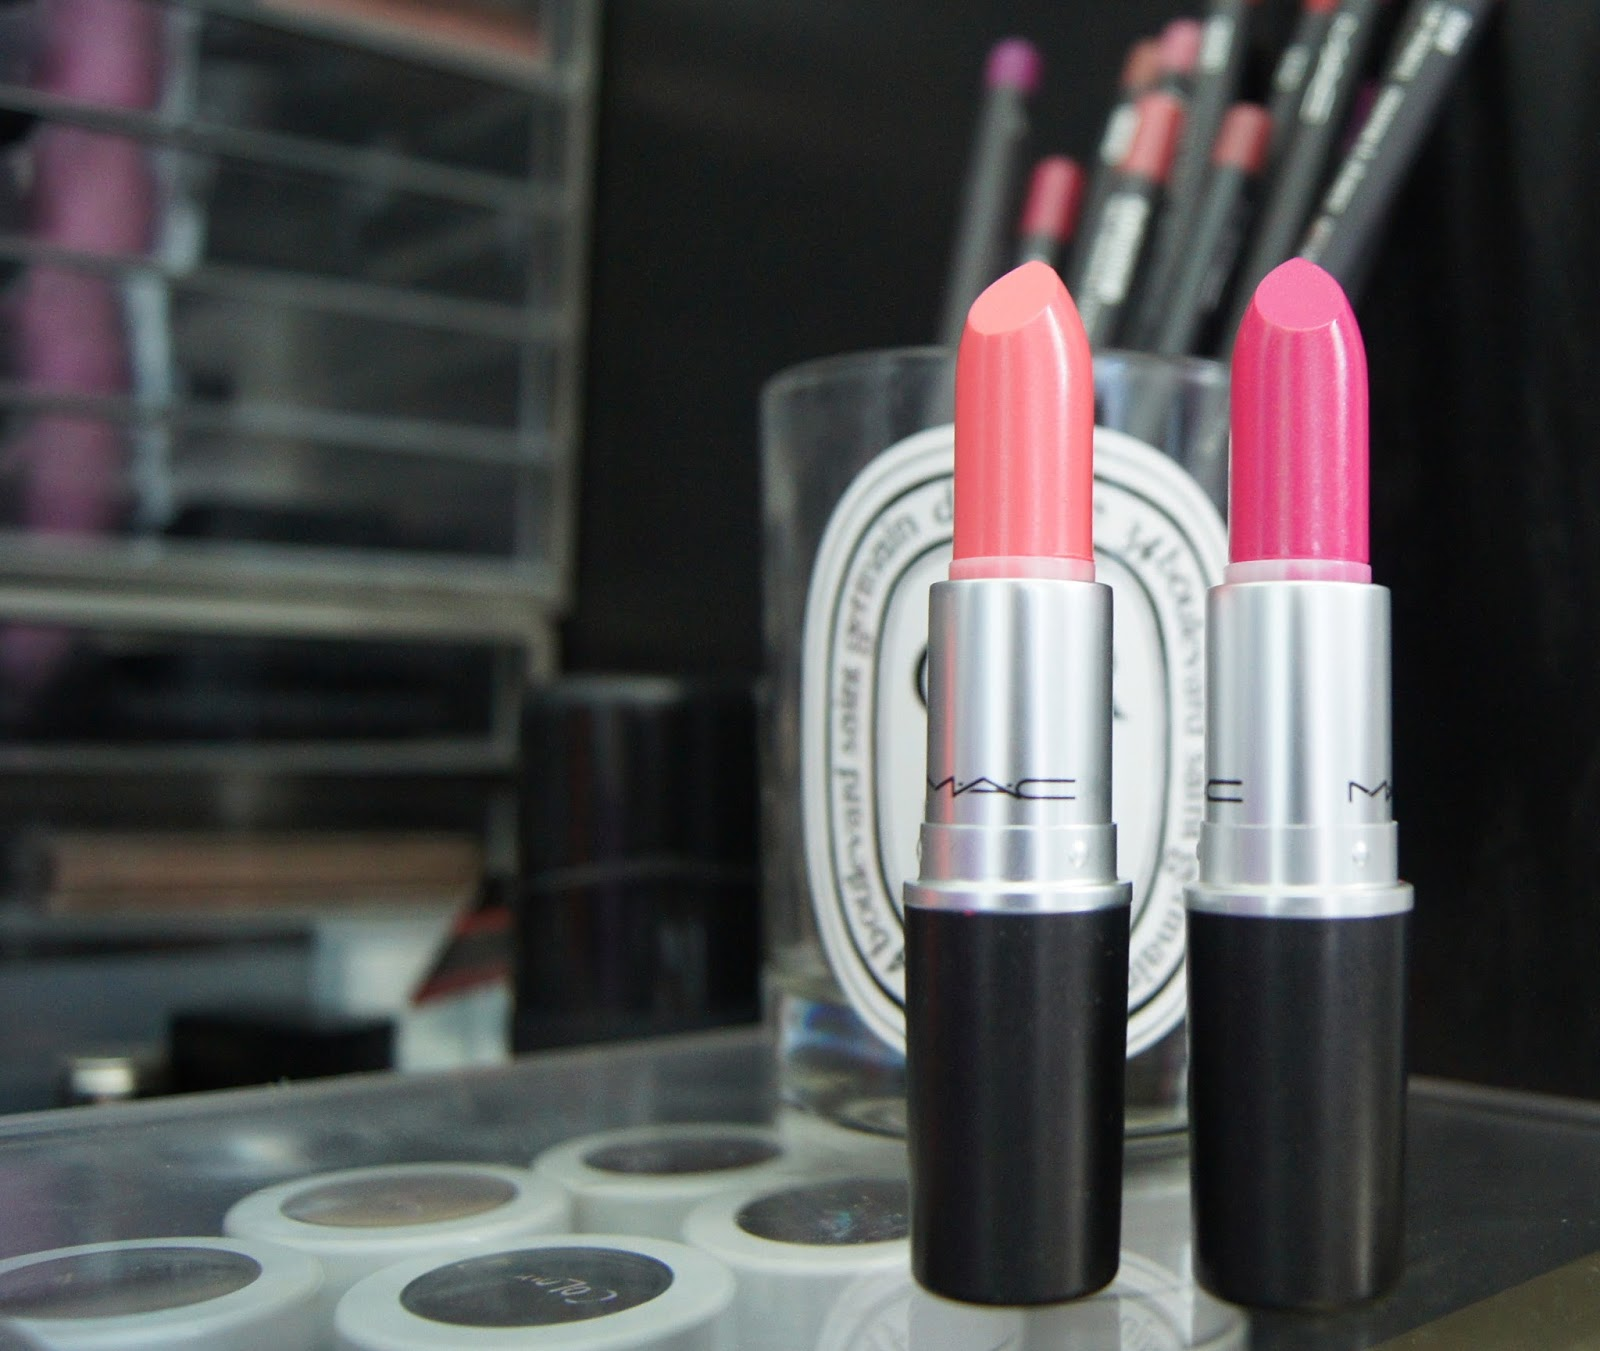 Little Buddha and Pickled Plum cremesheen pearl MAC lipsticks review